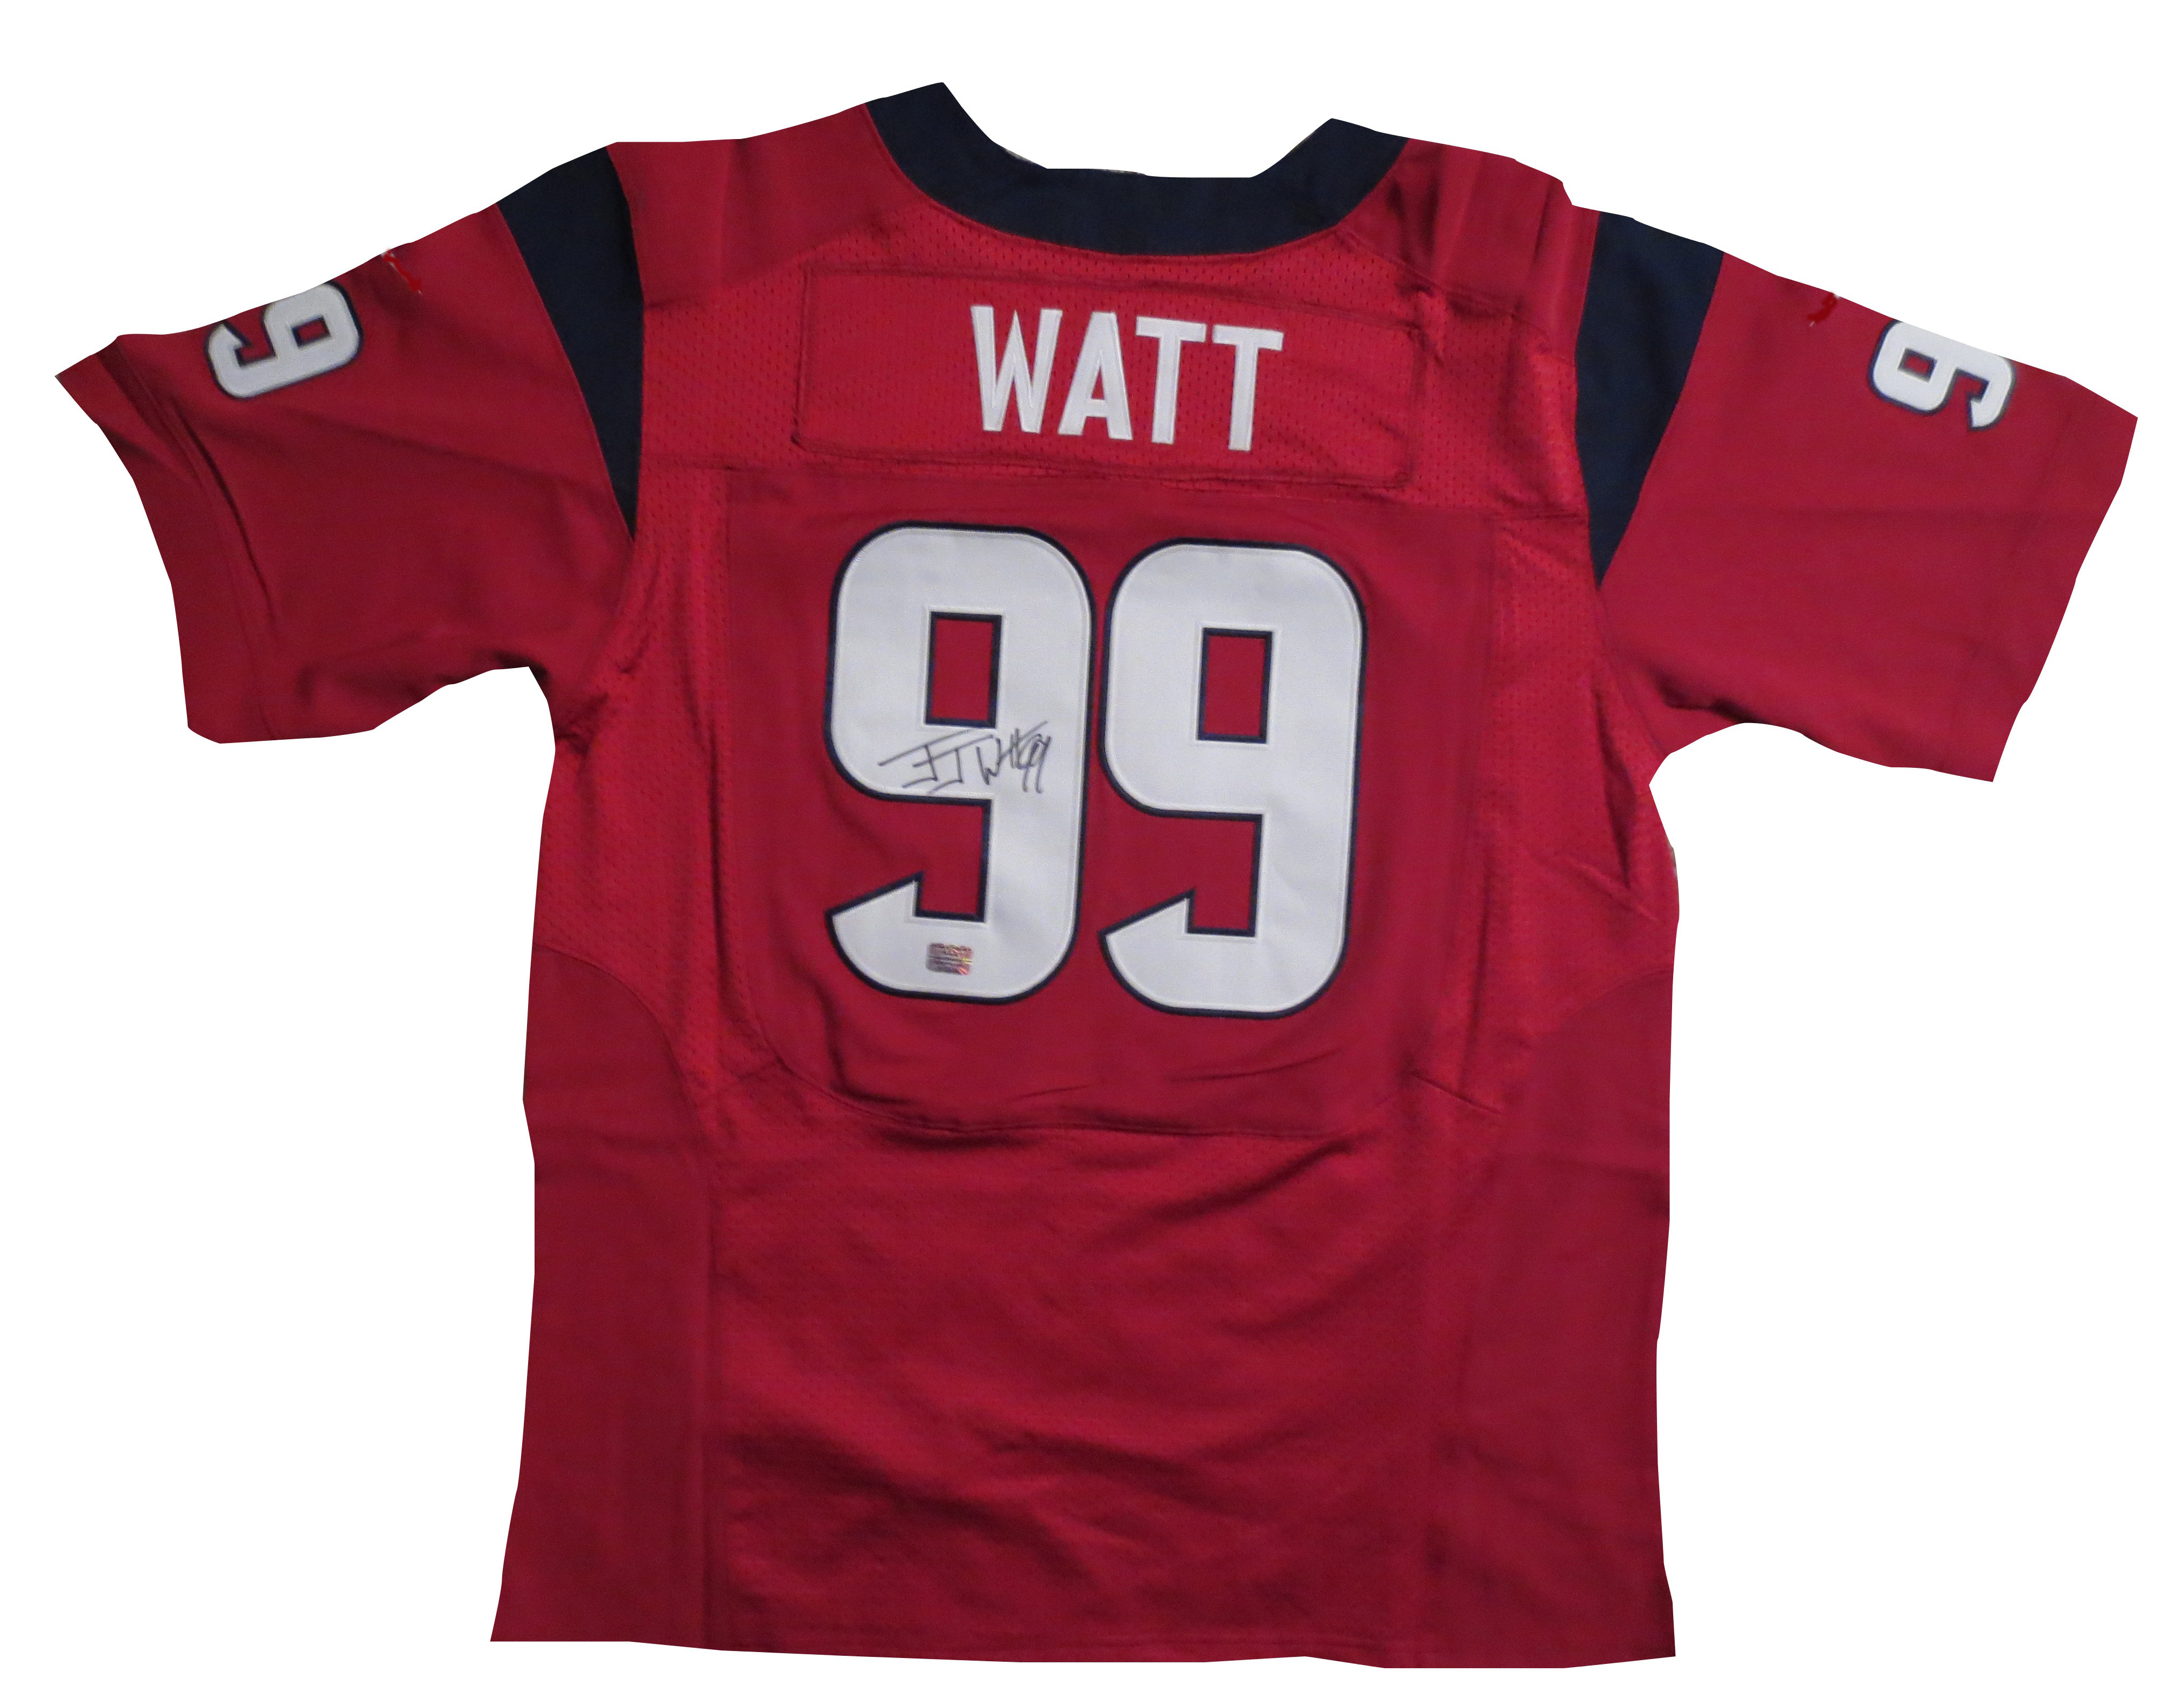 new product c7e26 67c6a JJ Watt Autographed Texans Jersey from Powers Autographs